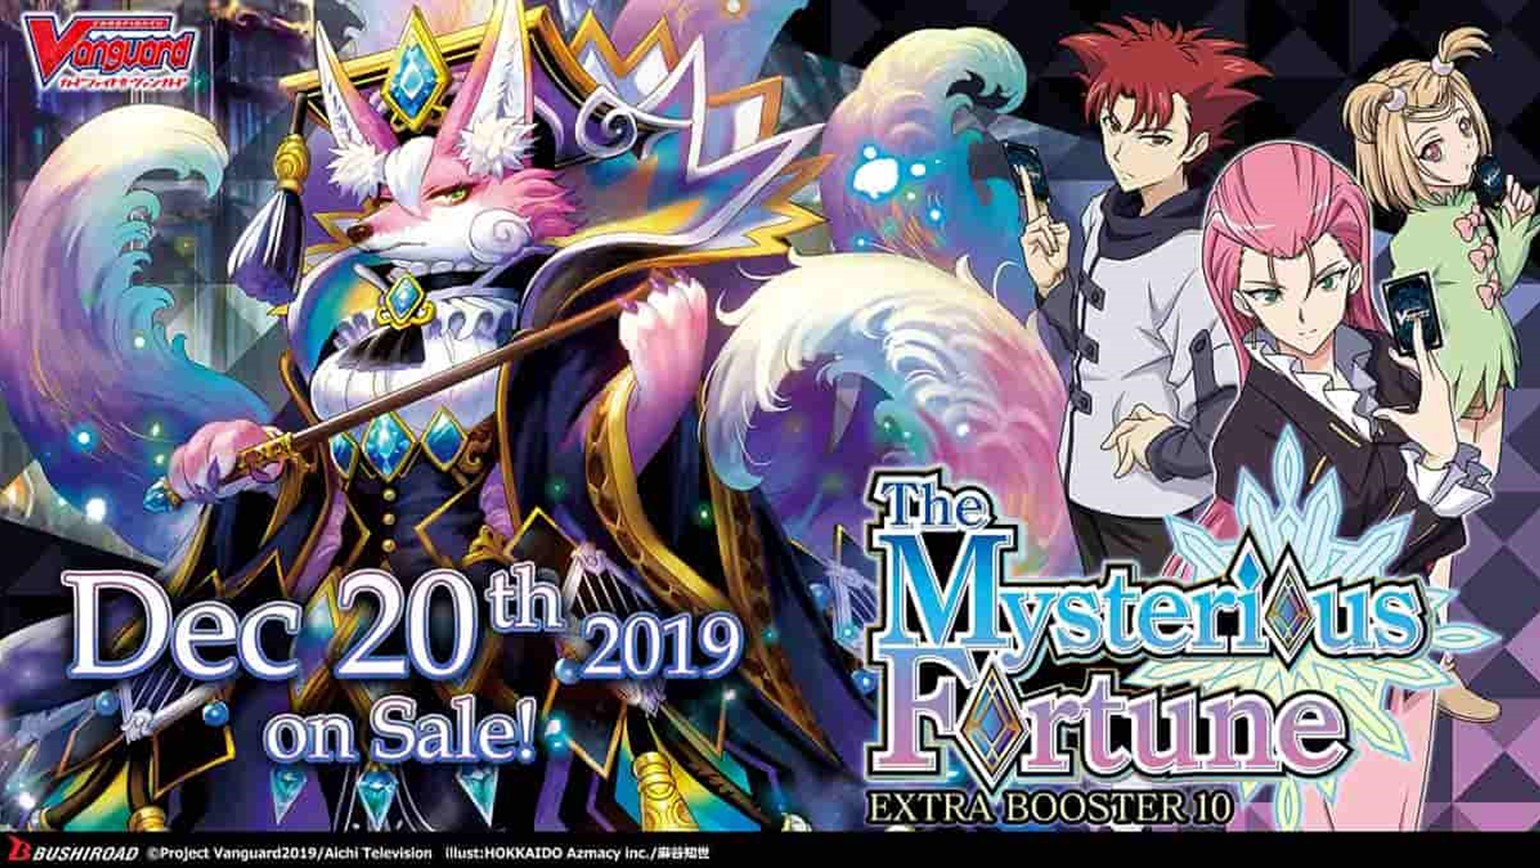 English Edition Cardfight!! Vanguard Extra Booster 10: The Mysterious Fortune Coming December 20th